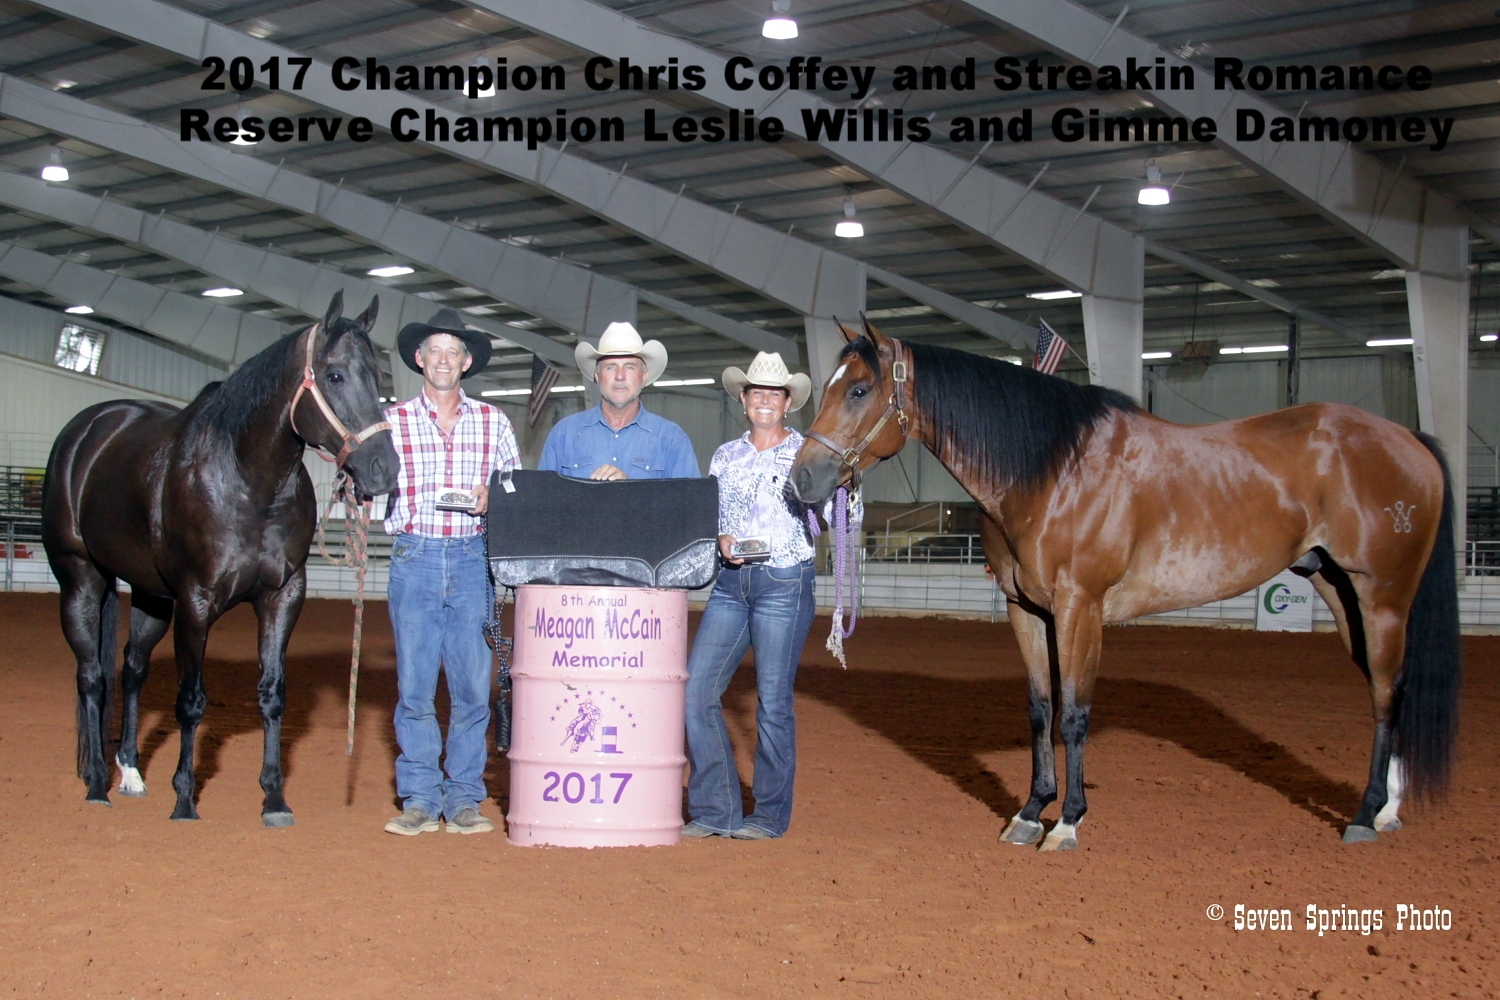 AMC Barrel and Performance Horses awarded a bronc halter to Chris Coffey, Average Champion and a saddle pad to the Leslie Willis who ran the fastest time of the weekend.